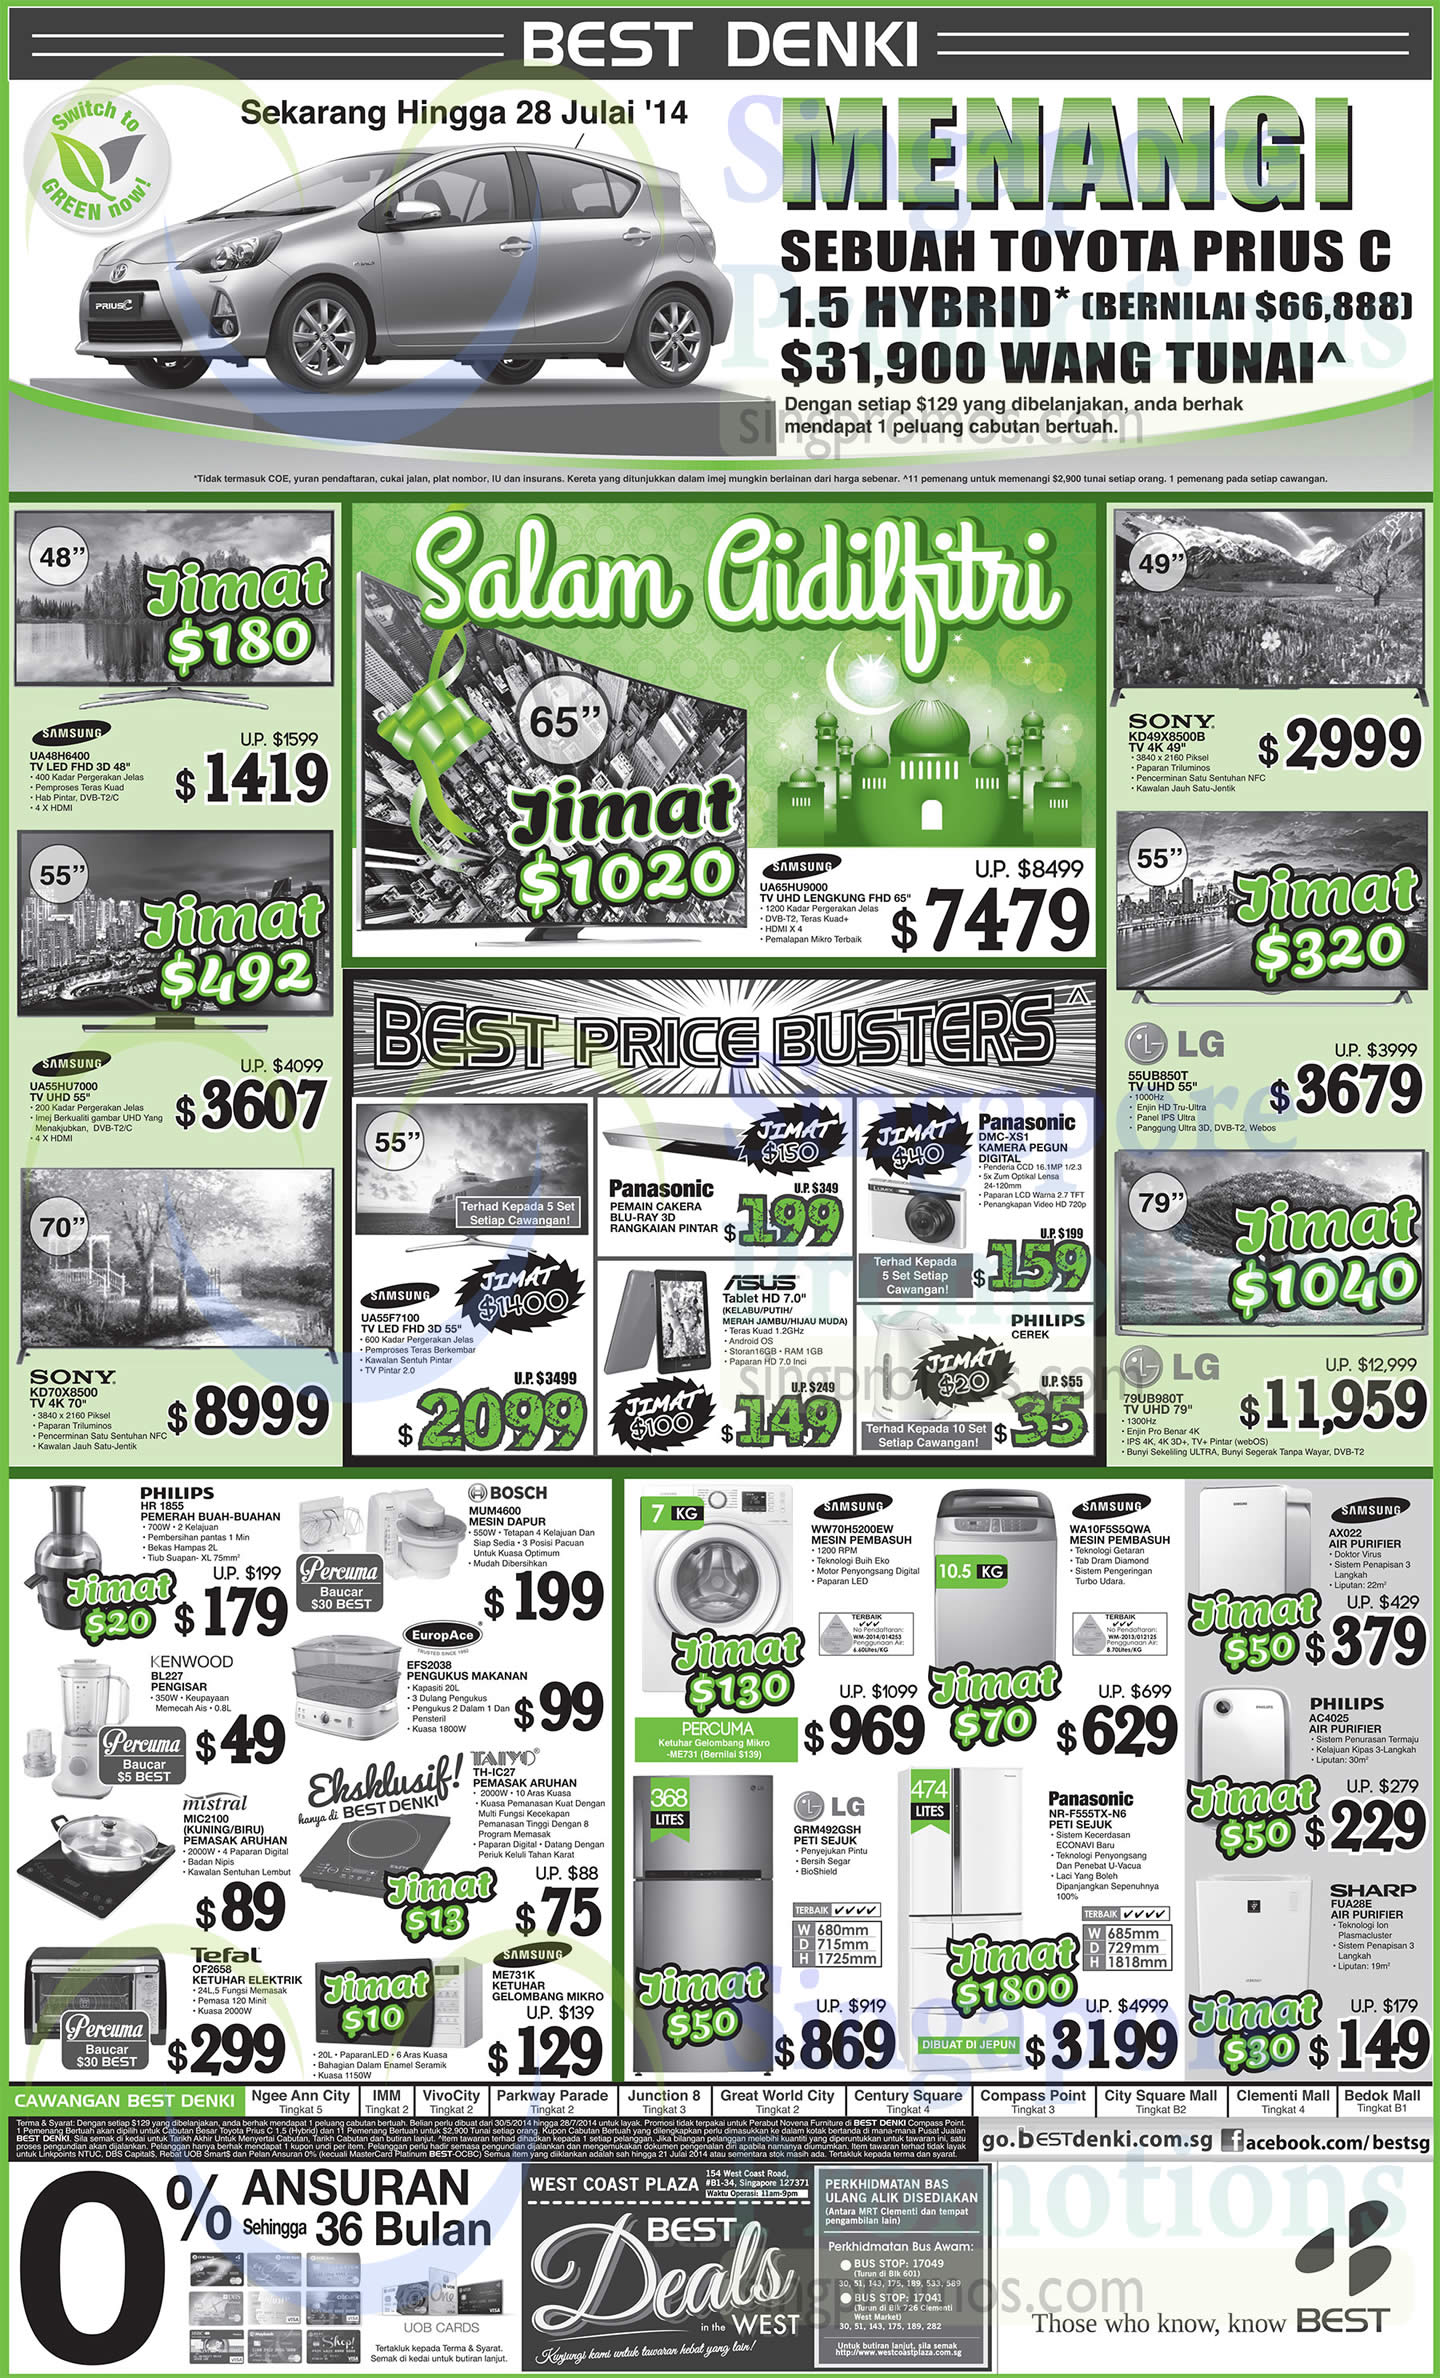 Samsung UA48H6400 TV, Samsung UA55HU7000 TV, SONY KD-70X8500 TV, PHILIPS HR1855 Fruit Juicer, Bosch MUM4600 Kitchen Machine, EUROPACE EFS2038 Food steamer, Kenwood BL227 Blender, Mistral MIC2100 Cooker, Taiyo TH-IC27 Cooker, Samsung ME731K Oven, Tefal OF2658 Oven, LG GRM492GSH Fridge, Panasonic NR-N6-F555TX Fridge, Samsung WA10F5S5GWA Washer, Samsung WW70H5200EW Washer, SHARP FUA28E Air Purifier, AC4025 PHILIPS Water Purifier, Samsung AX022 Water Purifier, LG 79UB980T TV, LG 55UB850T TV, Panasonic DMC-XS1 Digital Camera and SONY KD-49X8500B TV